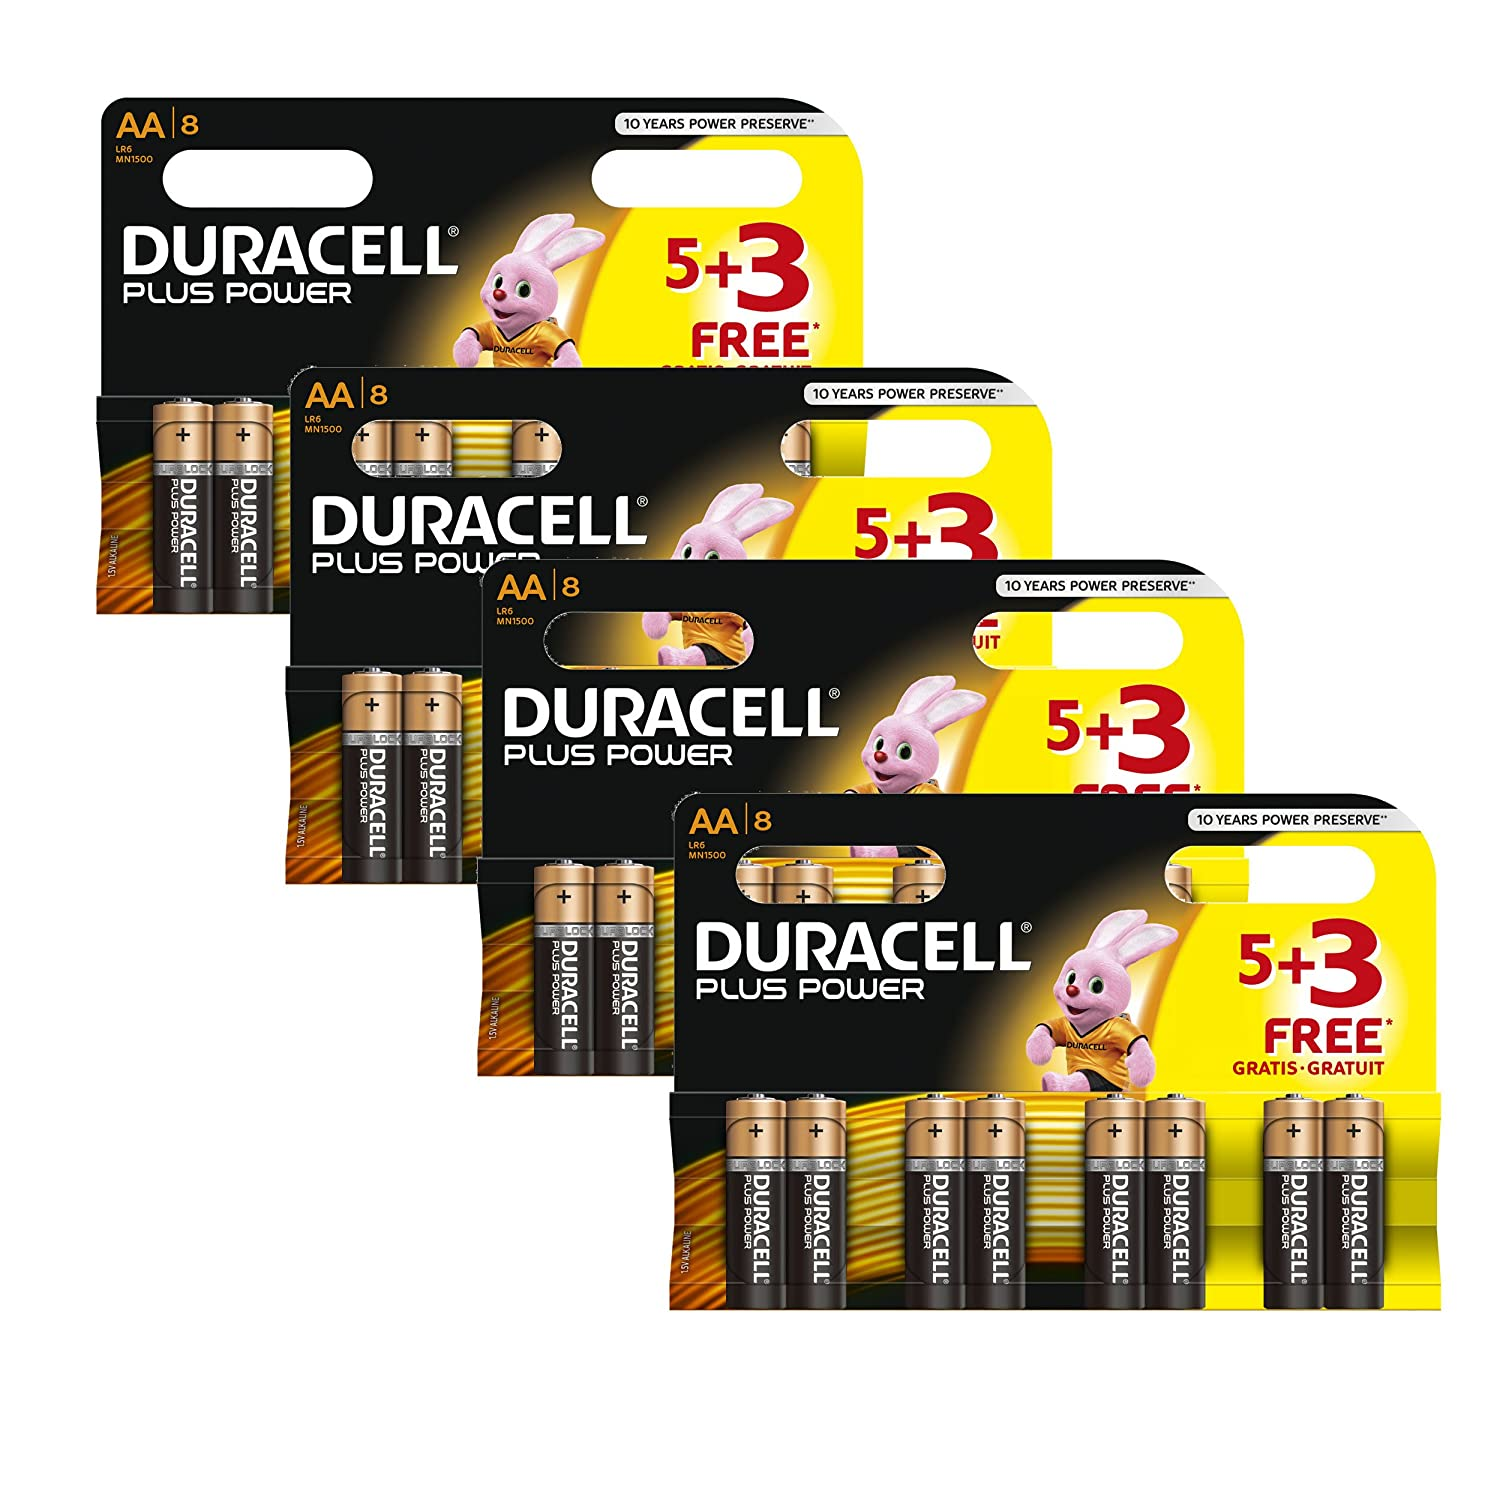 Duracell Mn1500 Plus Power Batteries Size Aa Black Powering Led From Single Cell Electronics